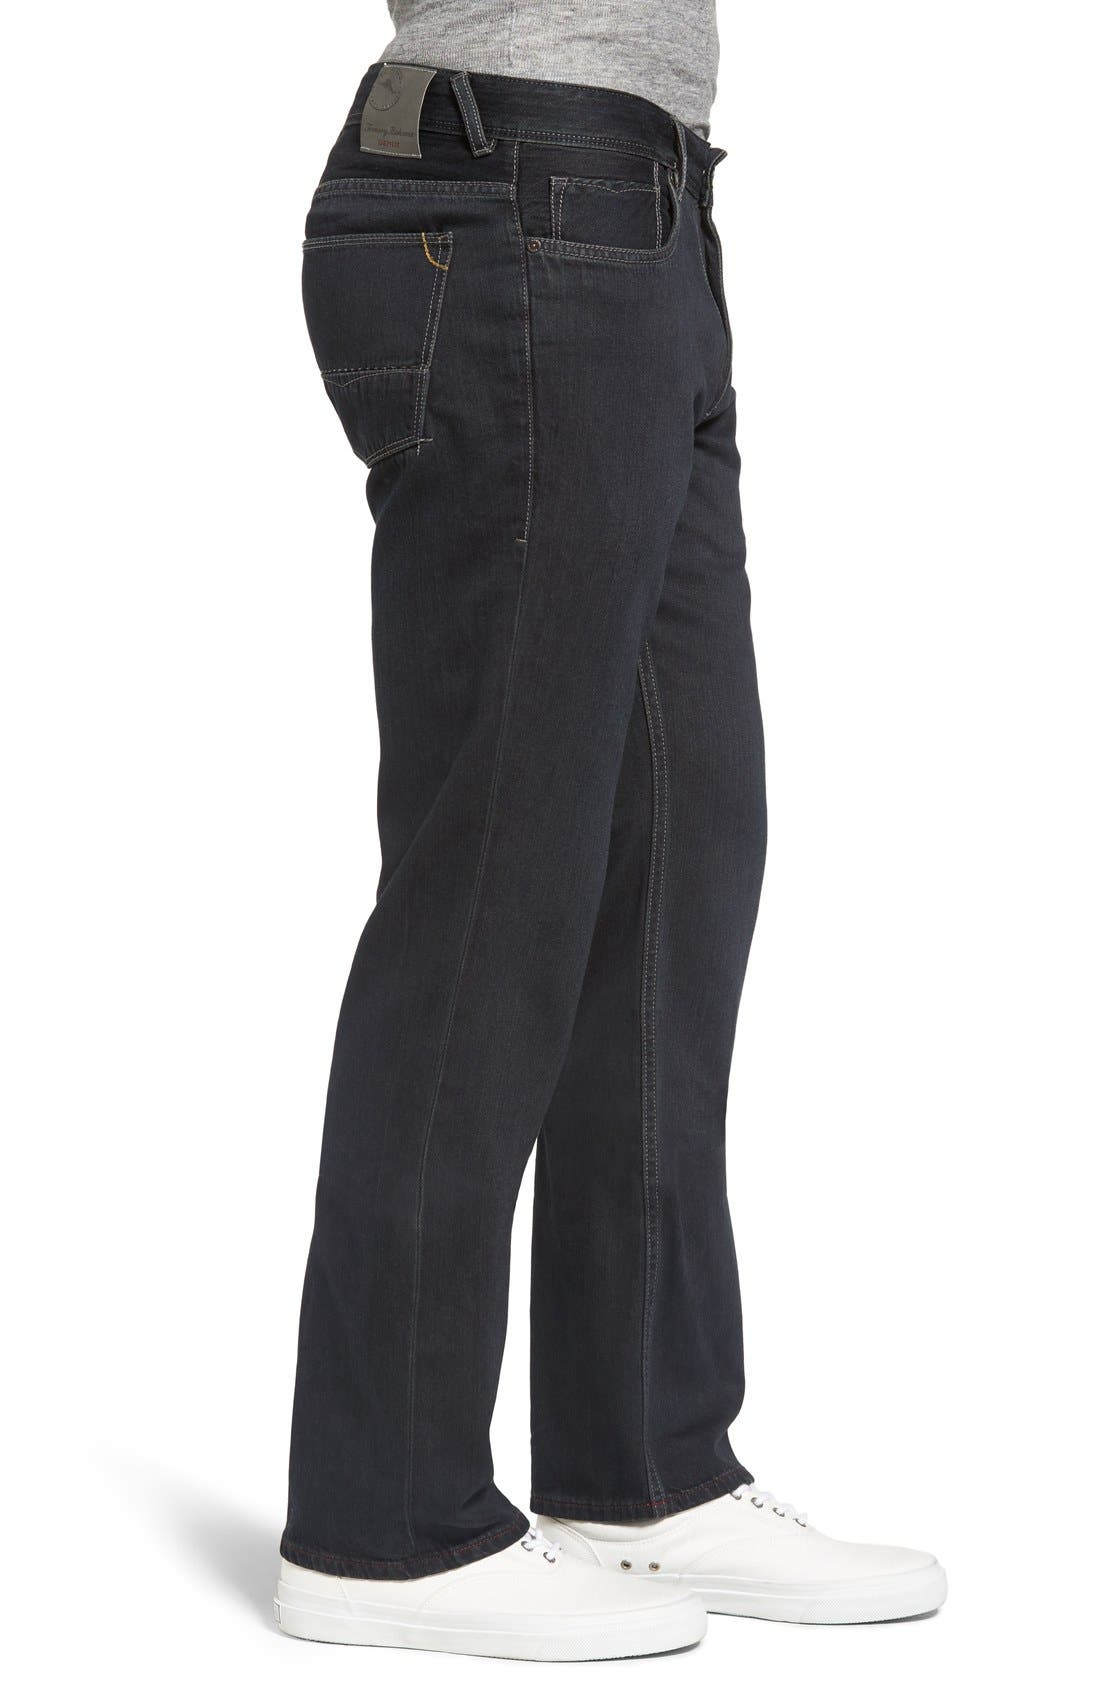 Cayman Relaxed Fit Straight Leg Jeans,                             Alternate thumbnail 4, color,                             BLACK OVERDYE